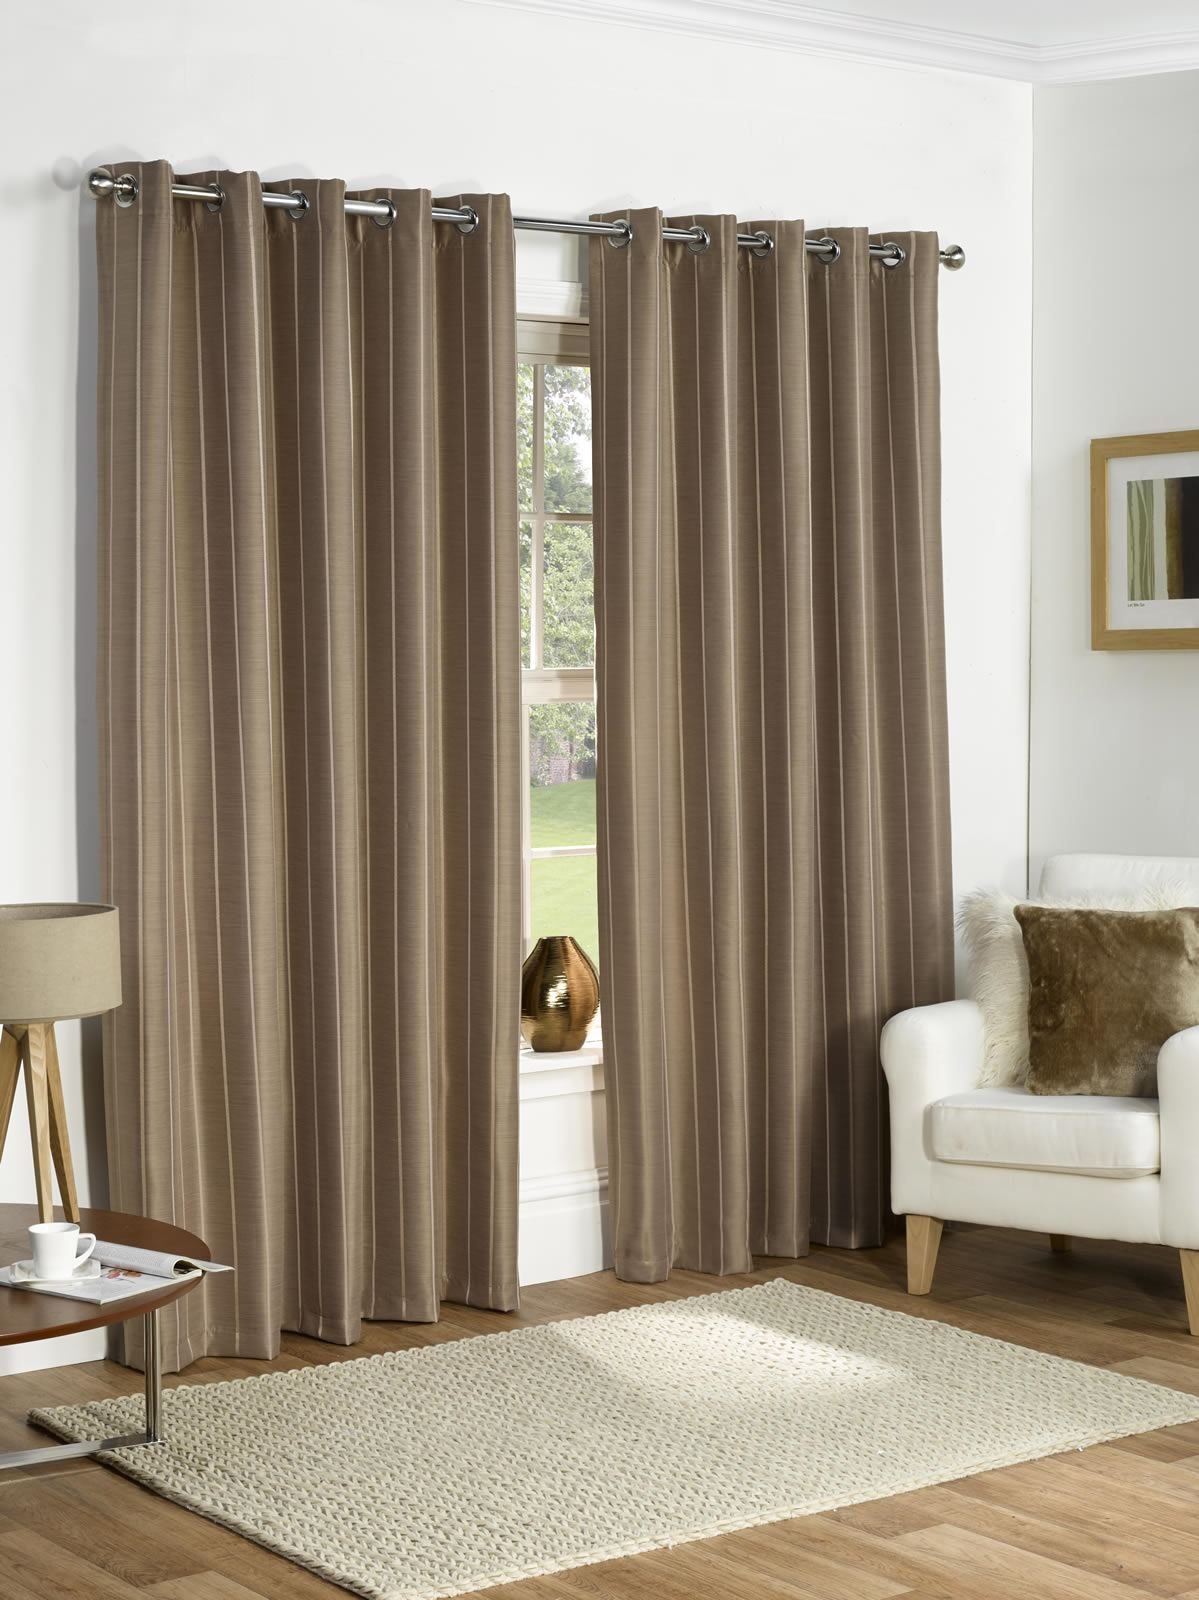 Thermal curtains grey - Thermal Ring Top Fully Lined Blackout Ready Made Curtains Eyelet Pair Grey Taupe